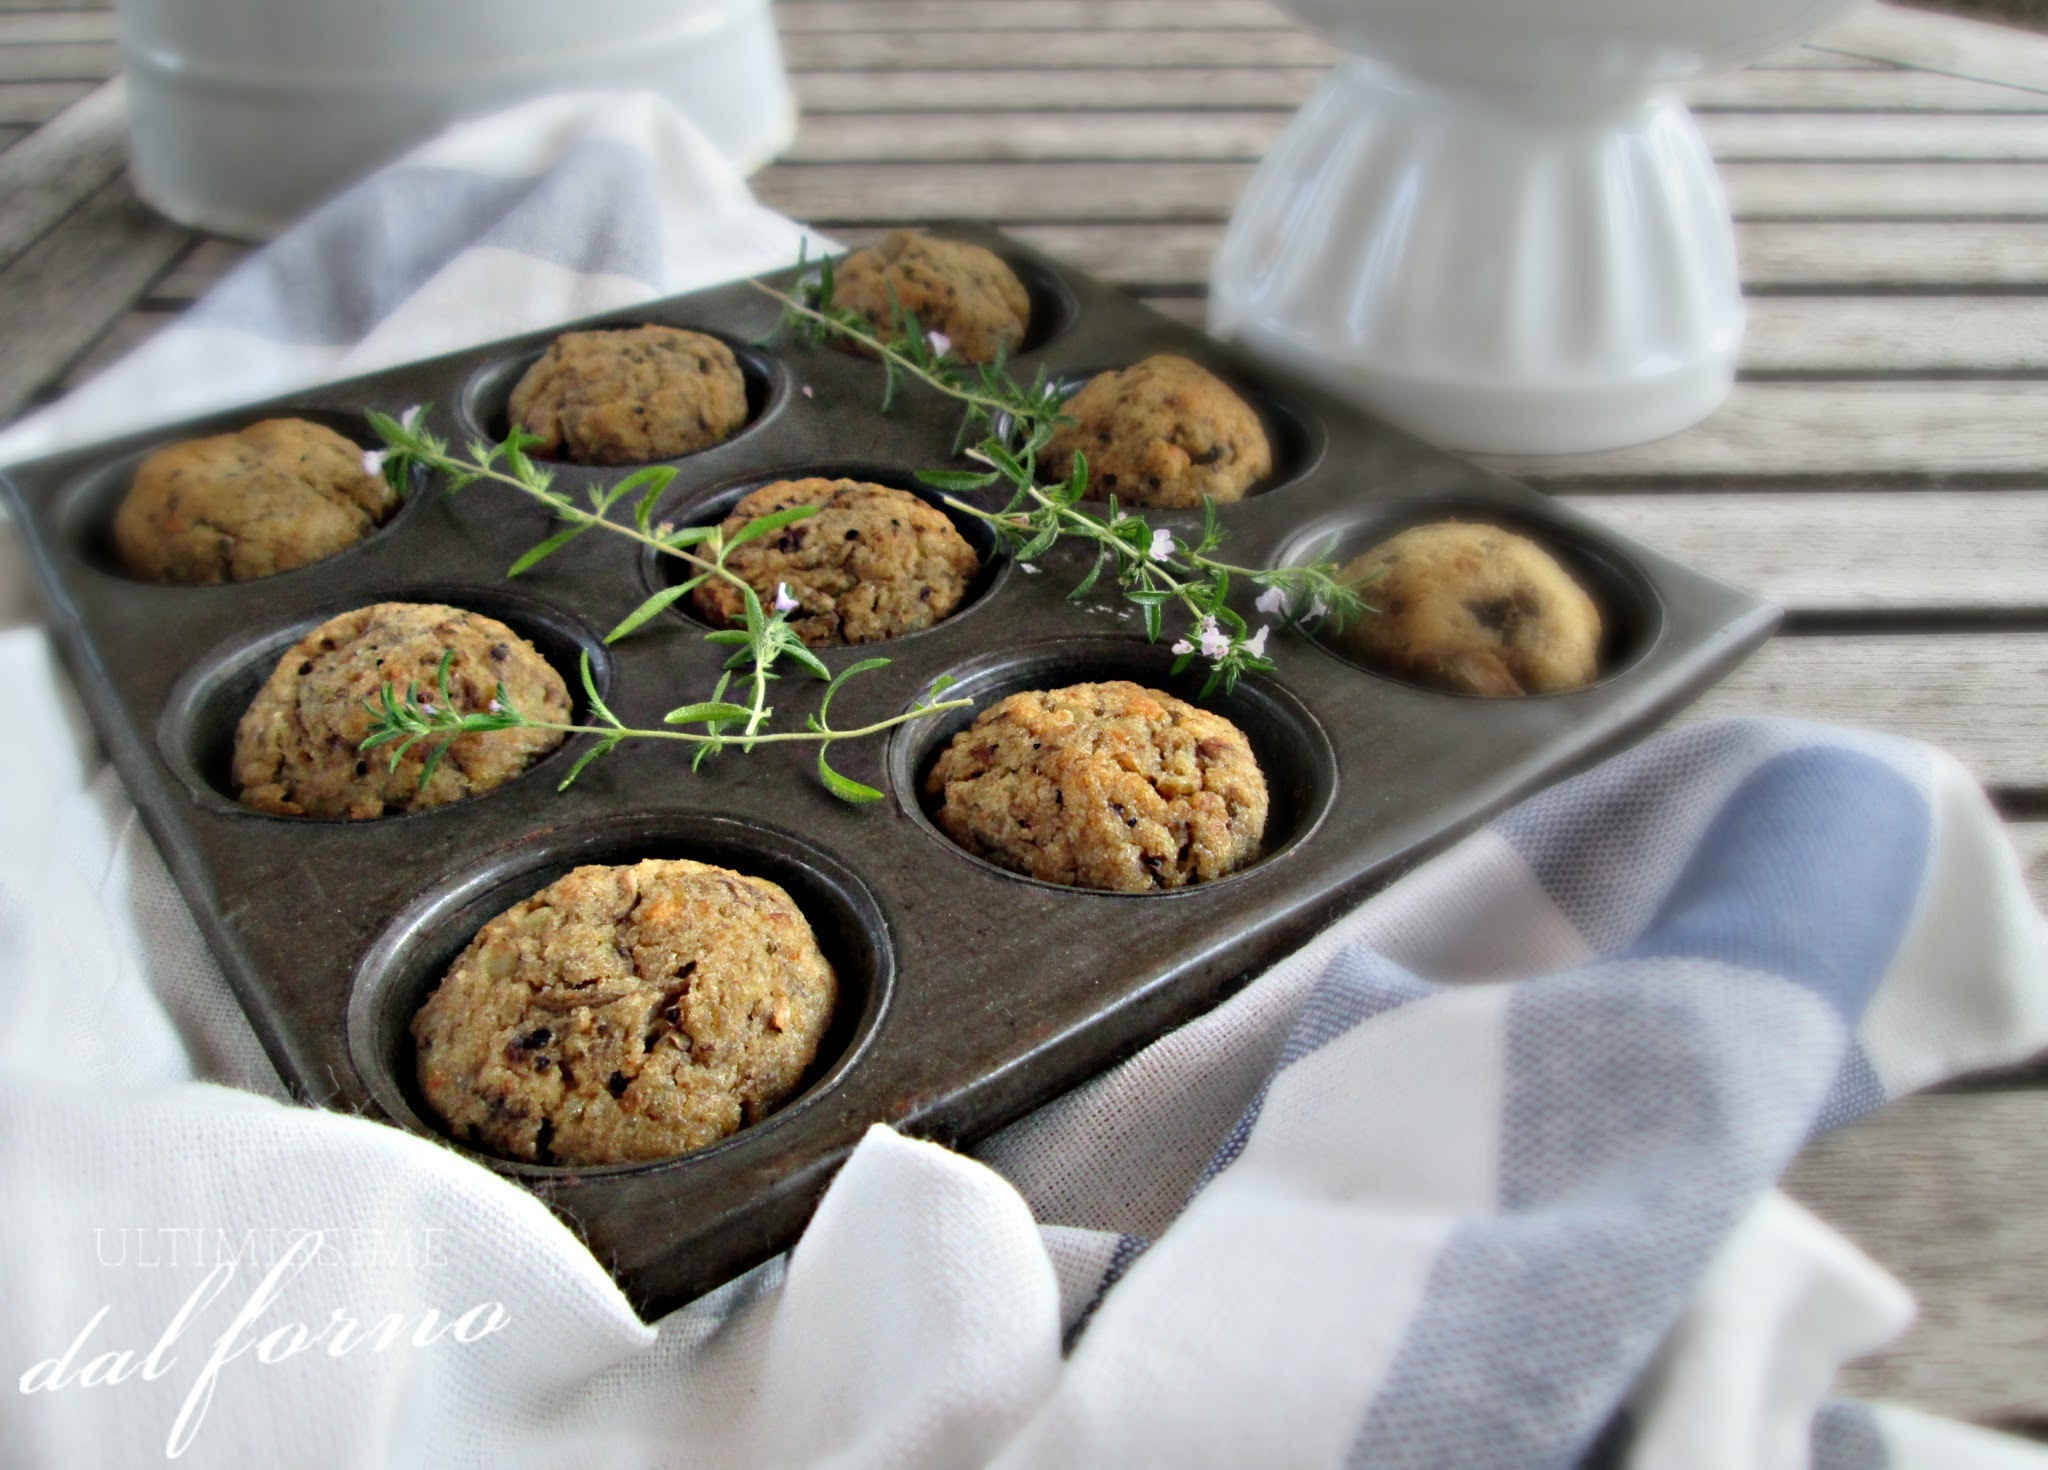 VEGAN FRIDAY: POLPETTE DI VERDURE VEGAN